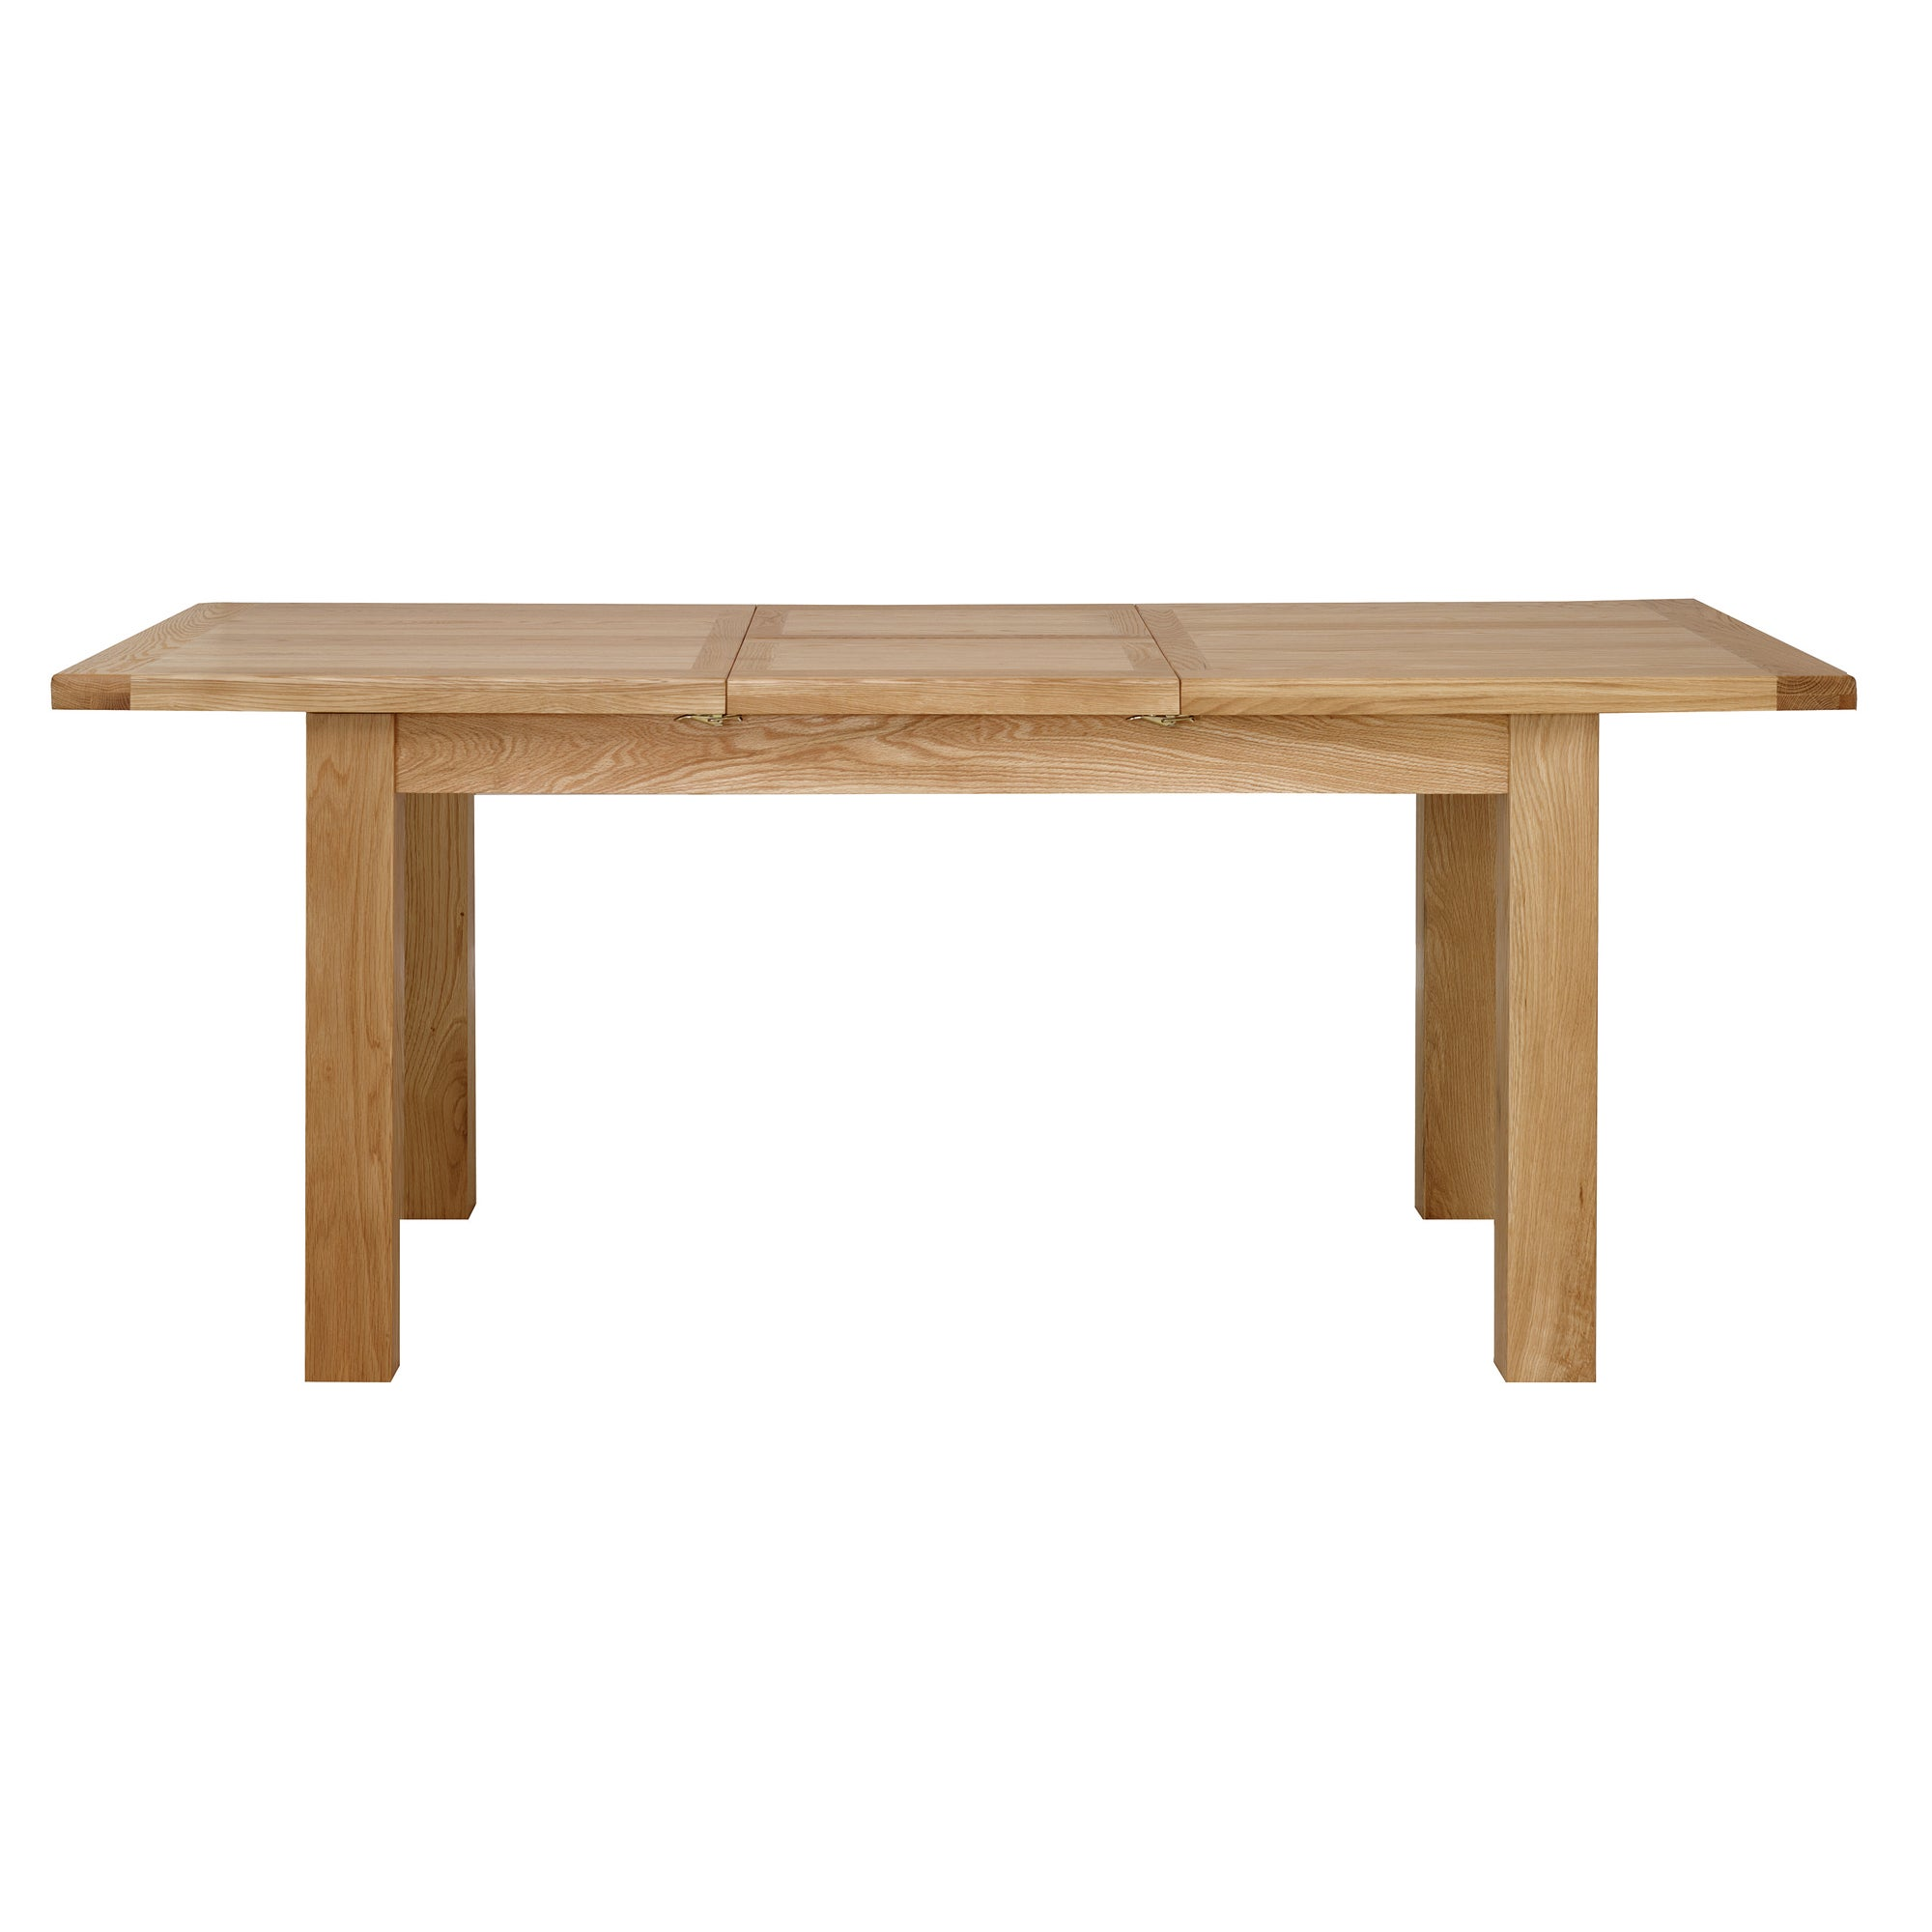 Buy Cheap Small Extending Dining Table Compare Furniture Prices For Best UK